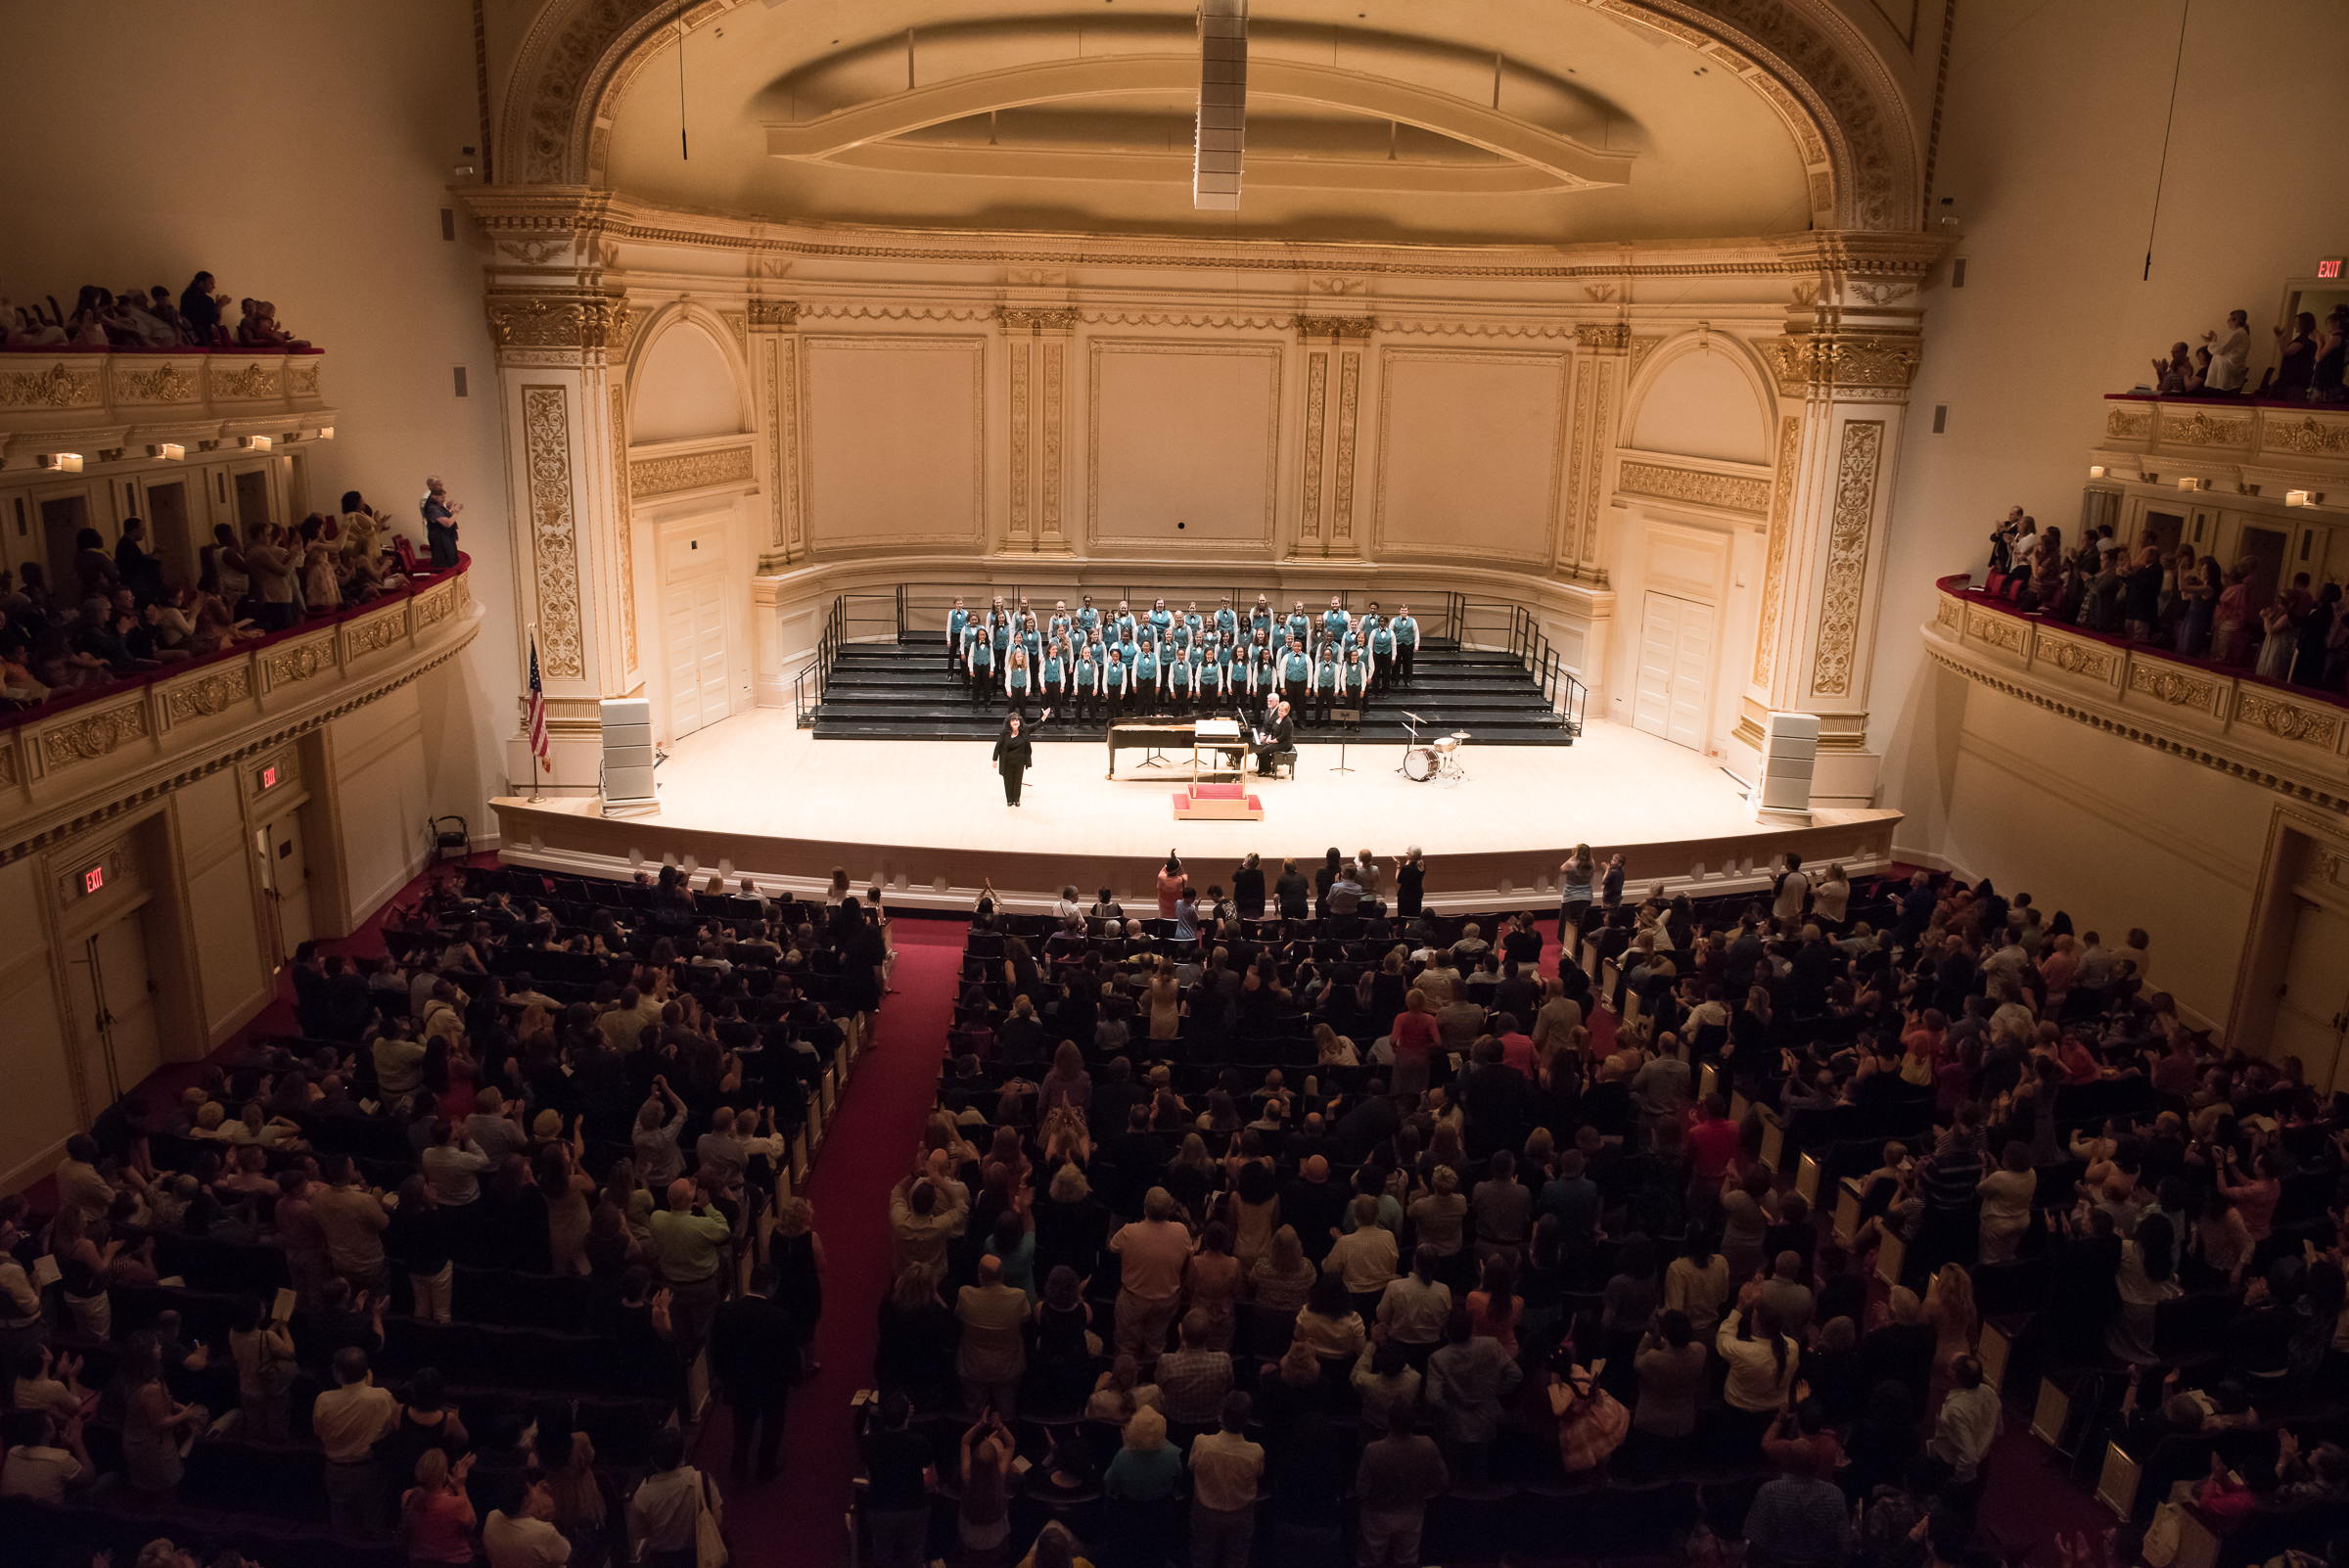 Distinguished Concerts International New York (DCINY) presents Songs of Inspiration and Hope in Review